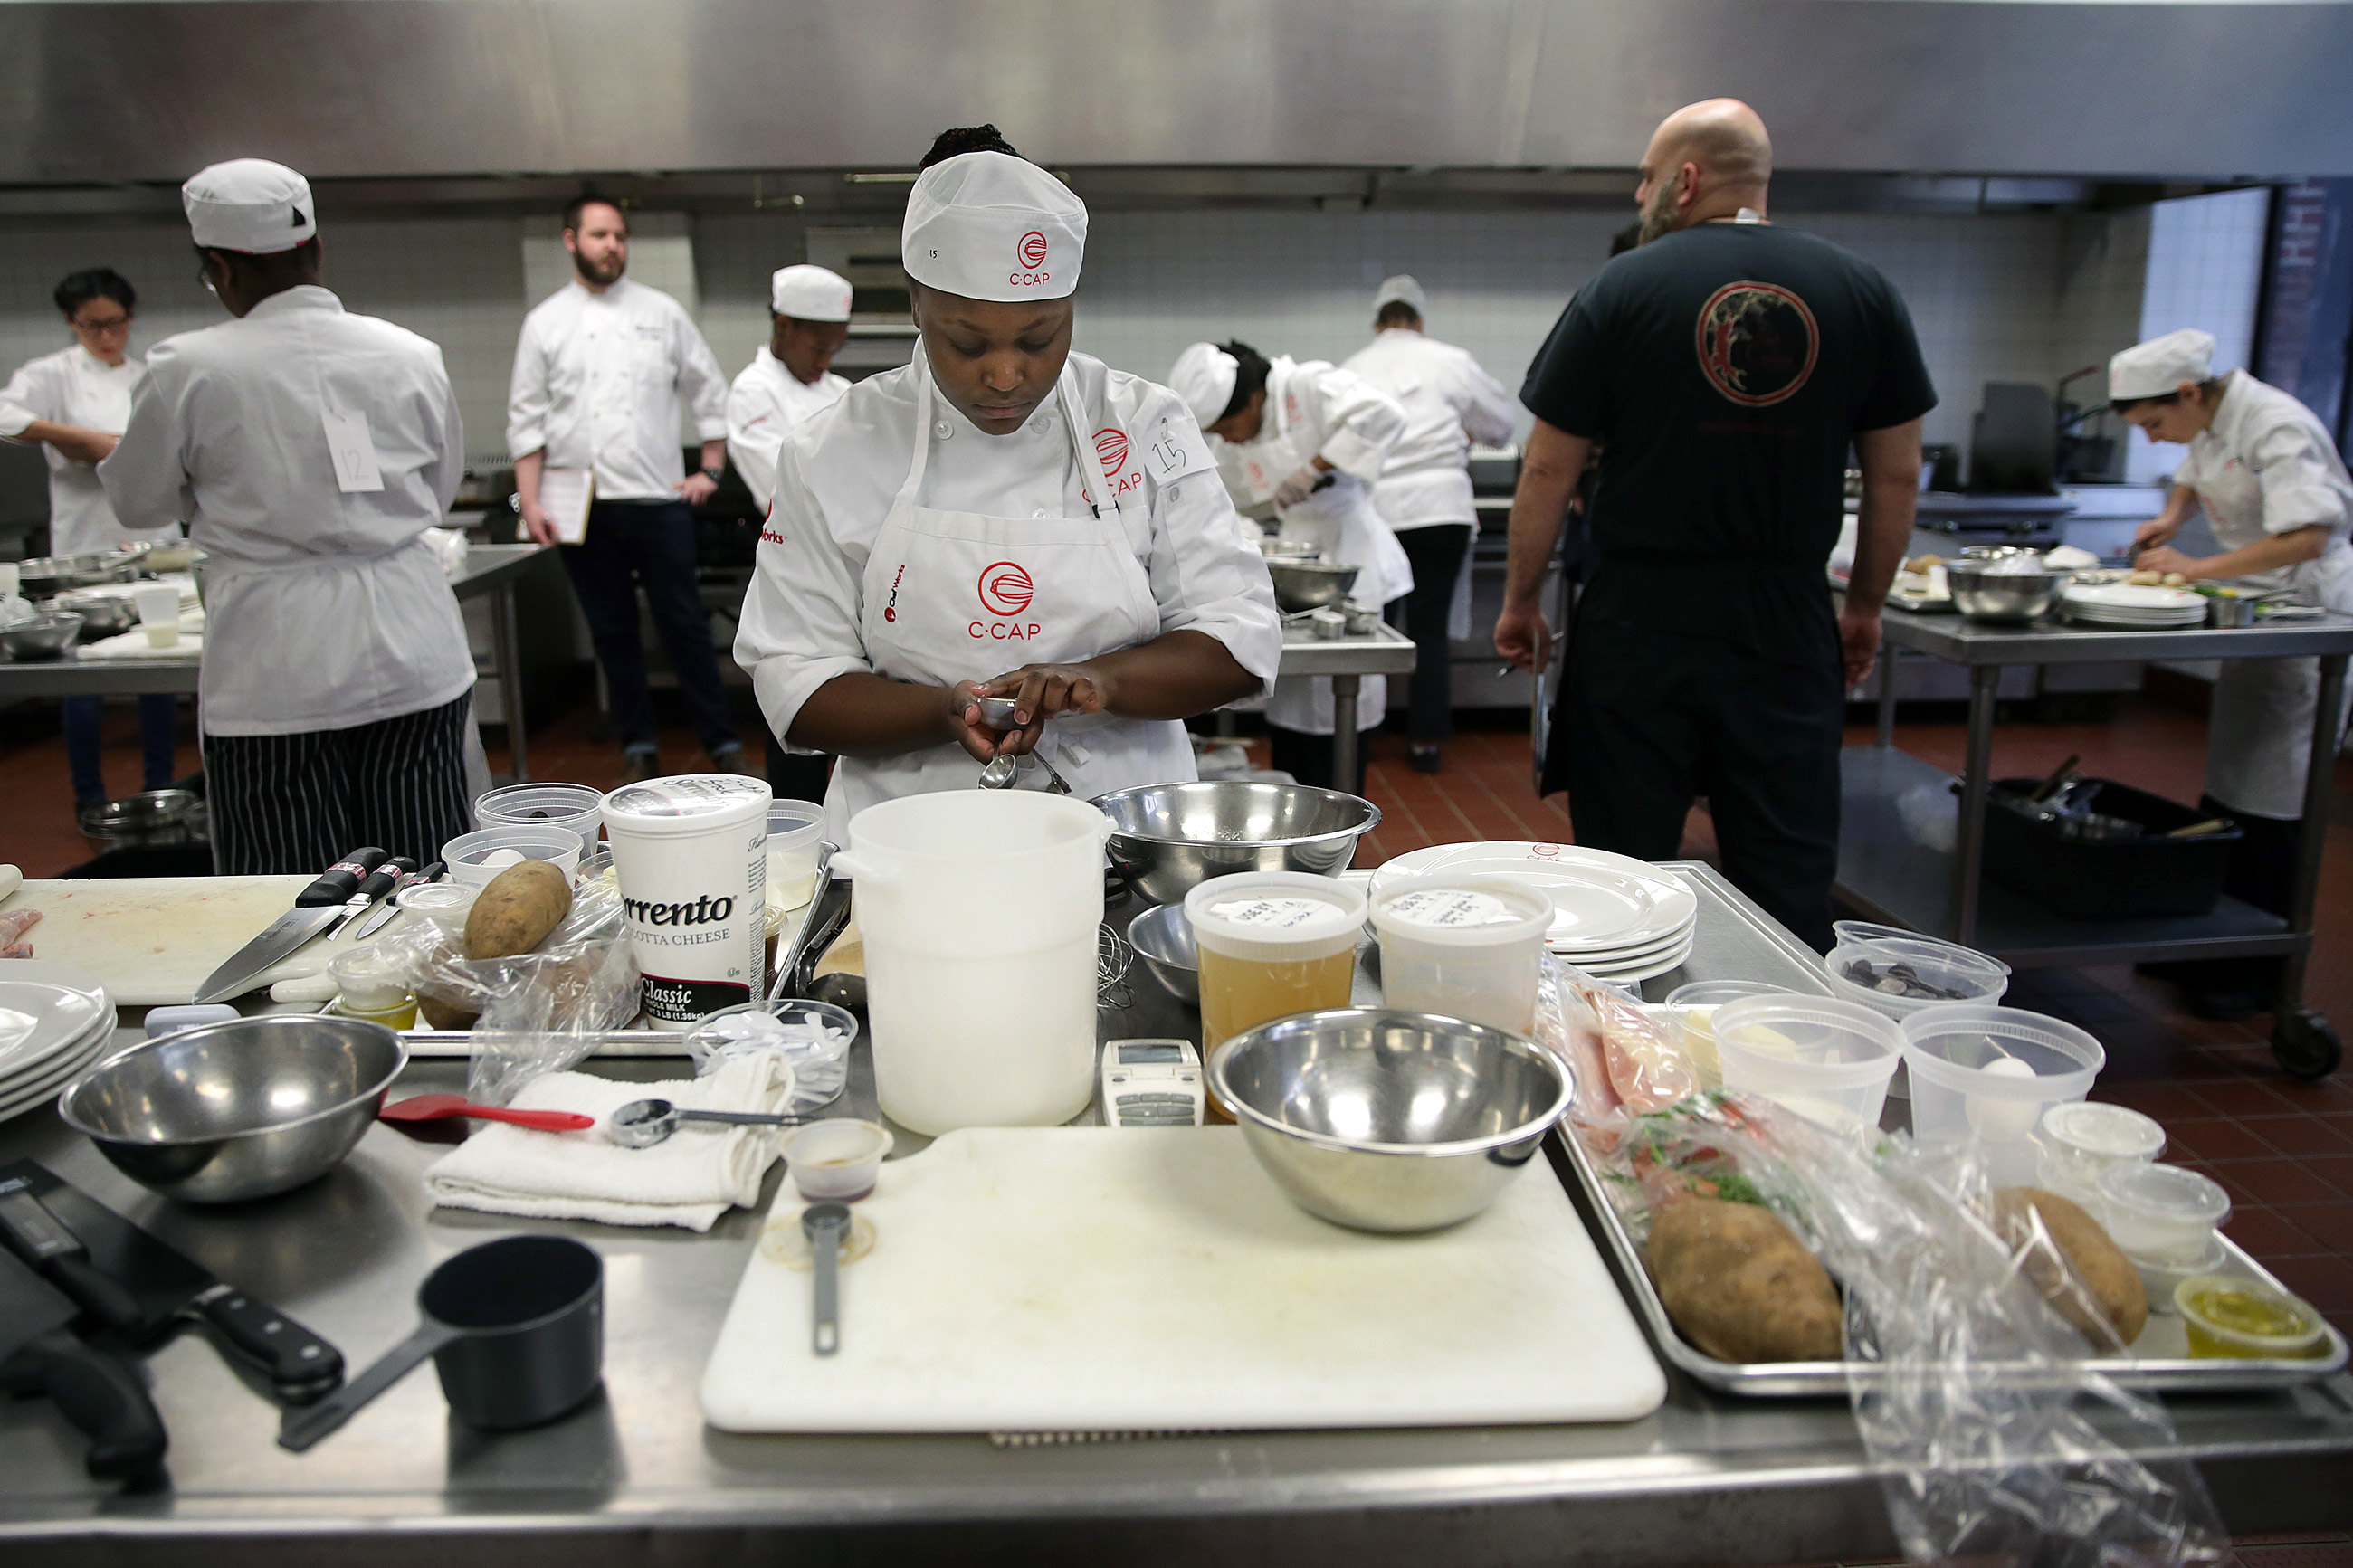 Martayia Hill, center, works on her dish during a competition sponsored by the Careers though Culinary Arts Program at The Art Institute of Philadelphia.